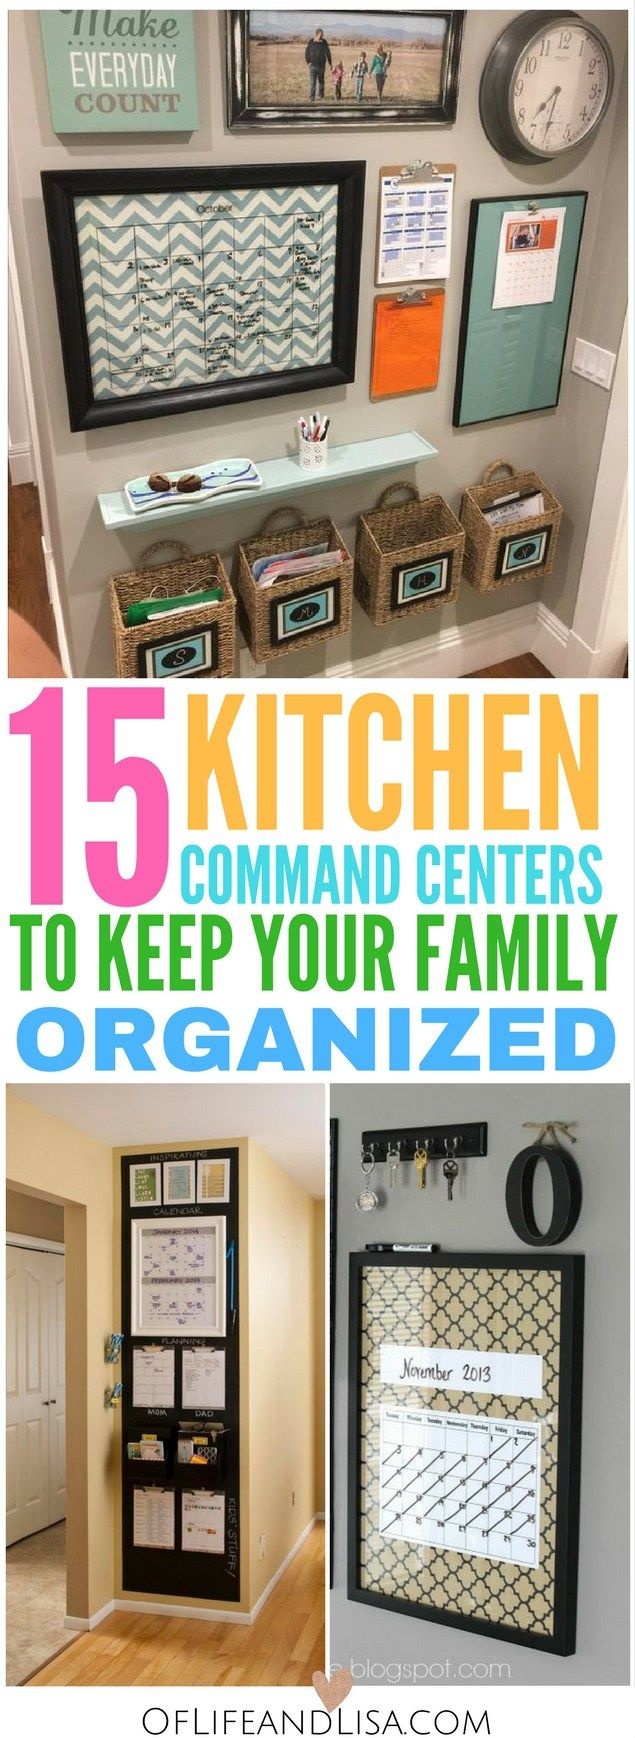 15 command centers ideas to keep your family super organized.